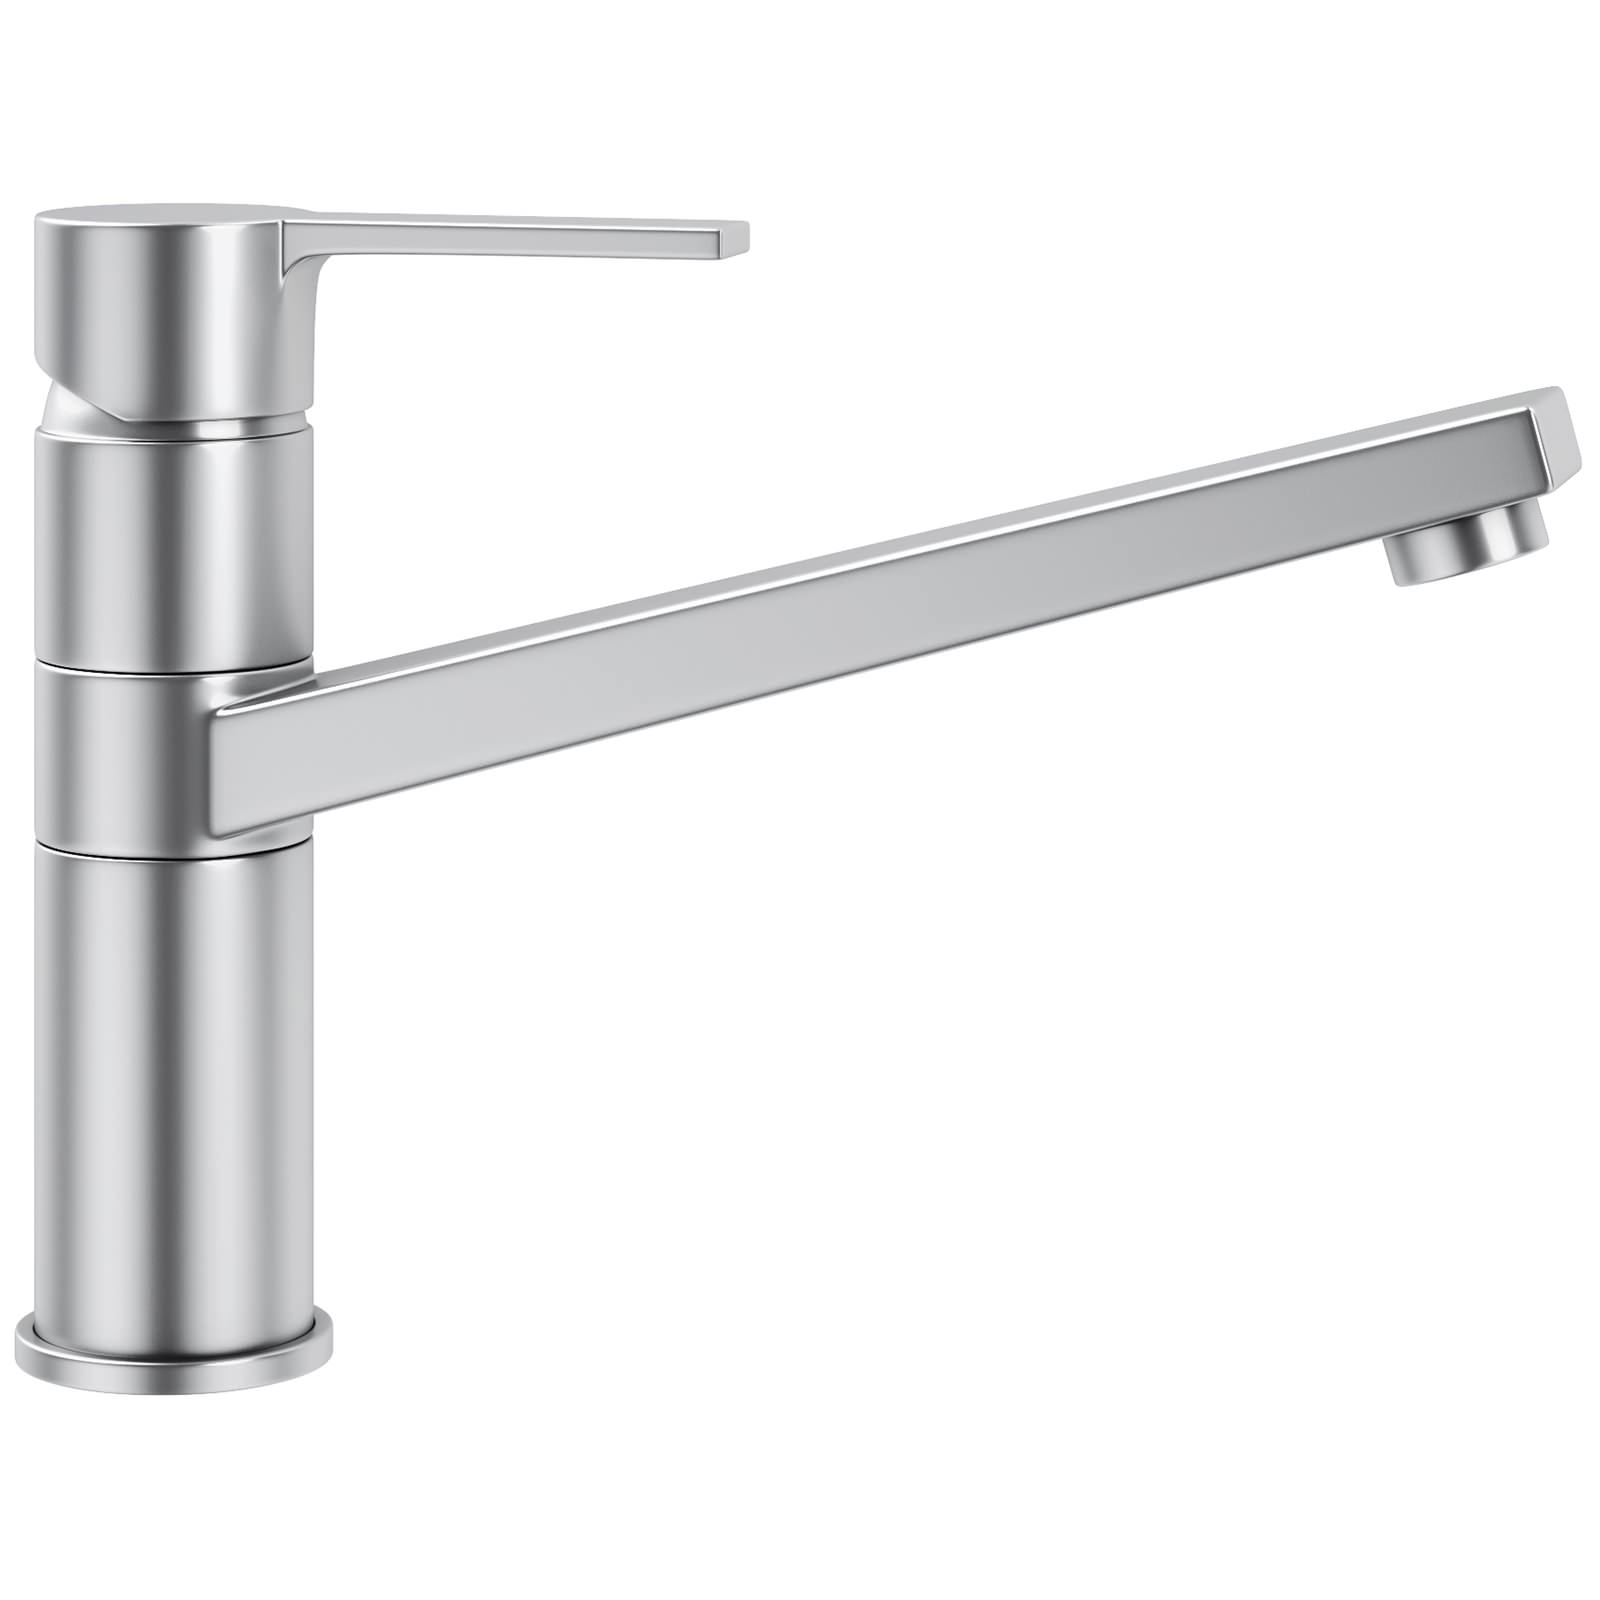 Franke Sink Mixer Taps : qs supplies taps kitchen mixer taps franke star kitchen sink mixer tap ...